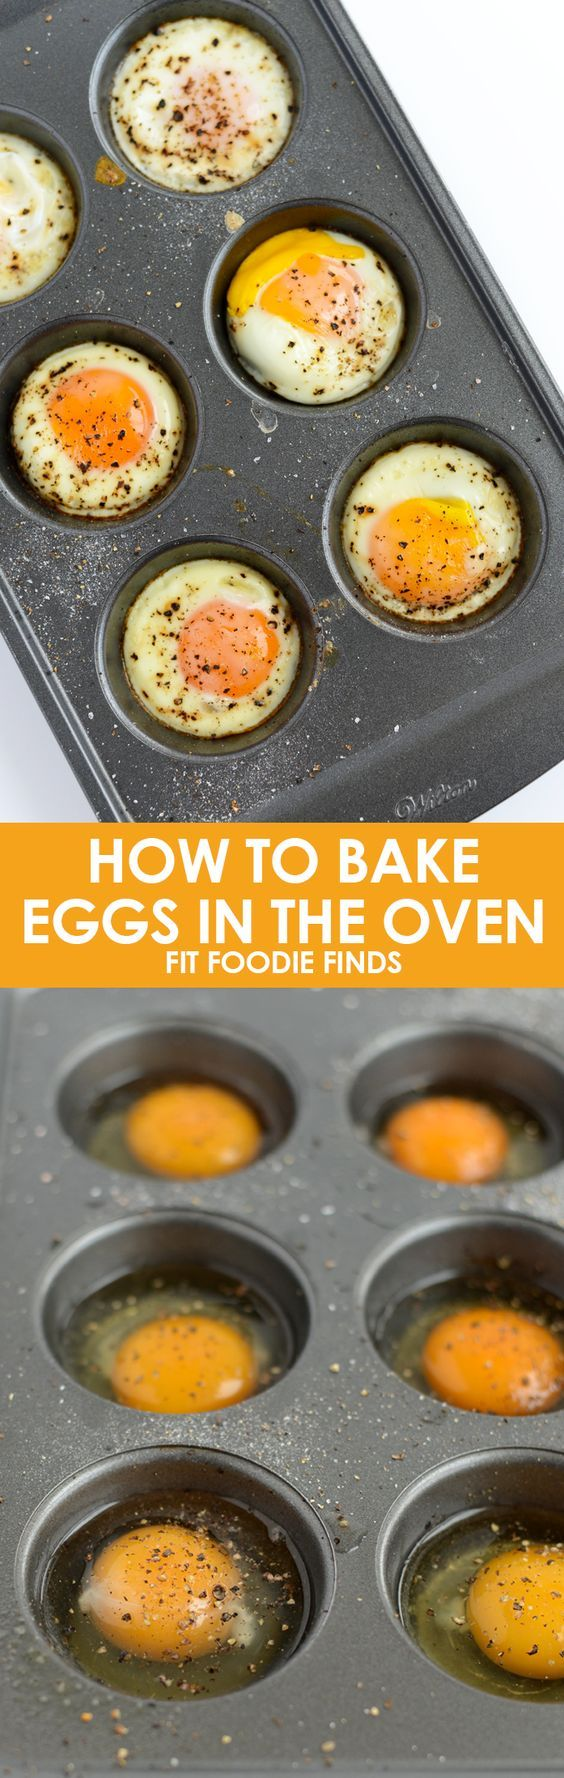 Have you ever baked eggs in the oven? They have the texture of a hard boiled egg, but you don't have to deal with peeling the shell off. Great to keep on hand in the fridge for all Burns and Phase 3 (like hard-boiled eggs, they taste great cold).